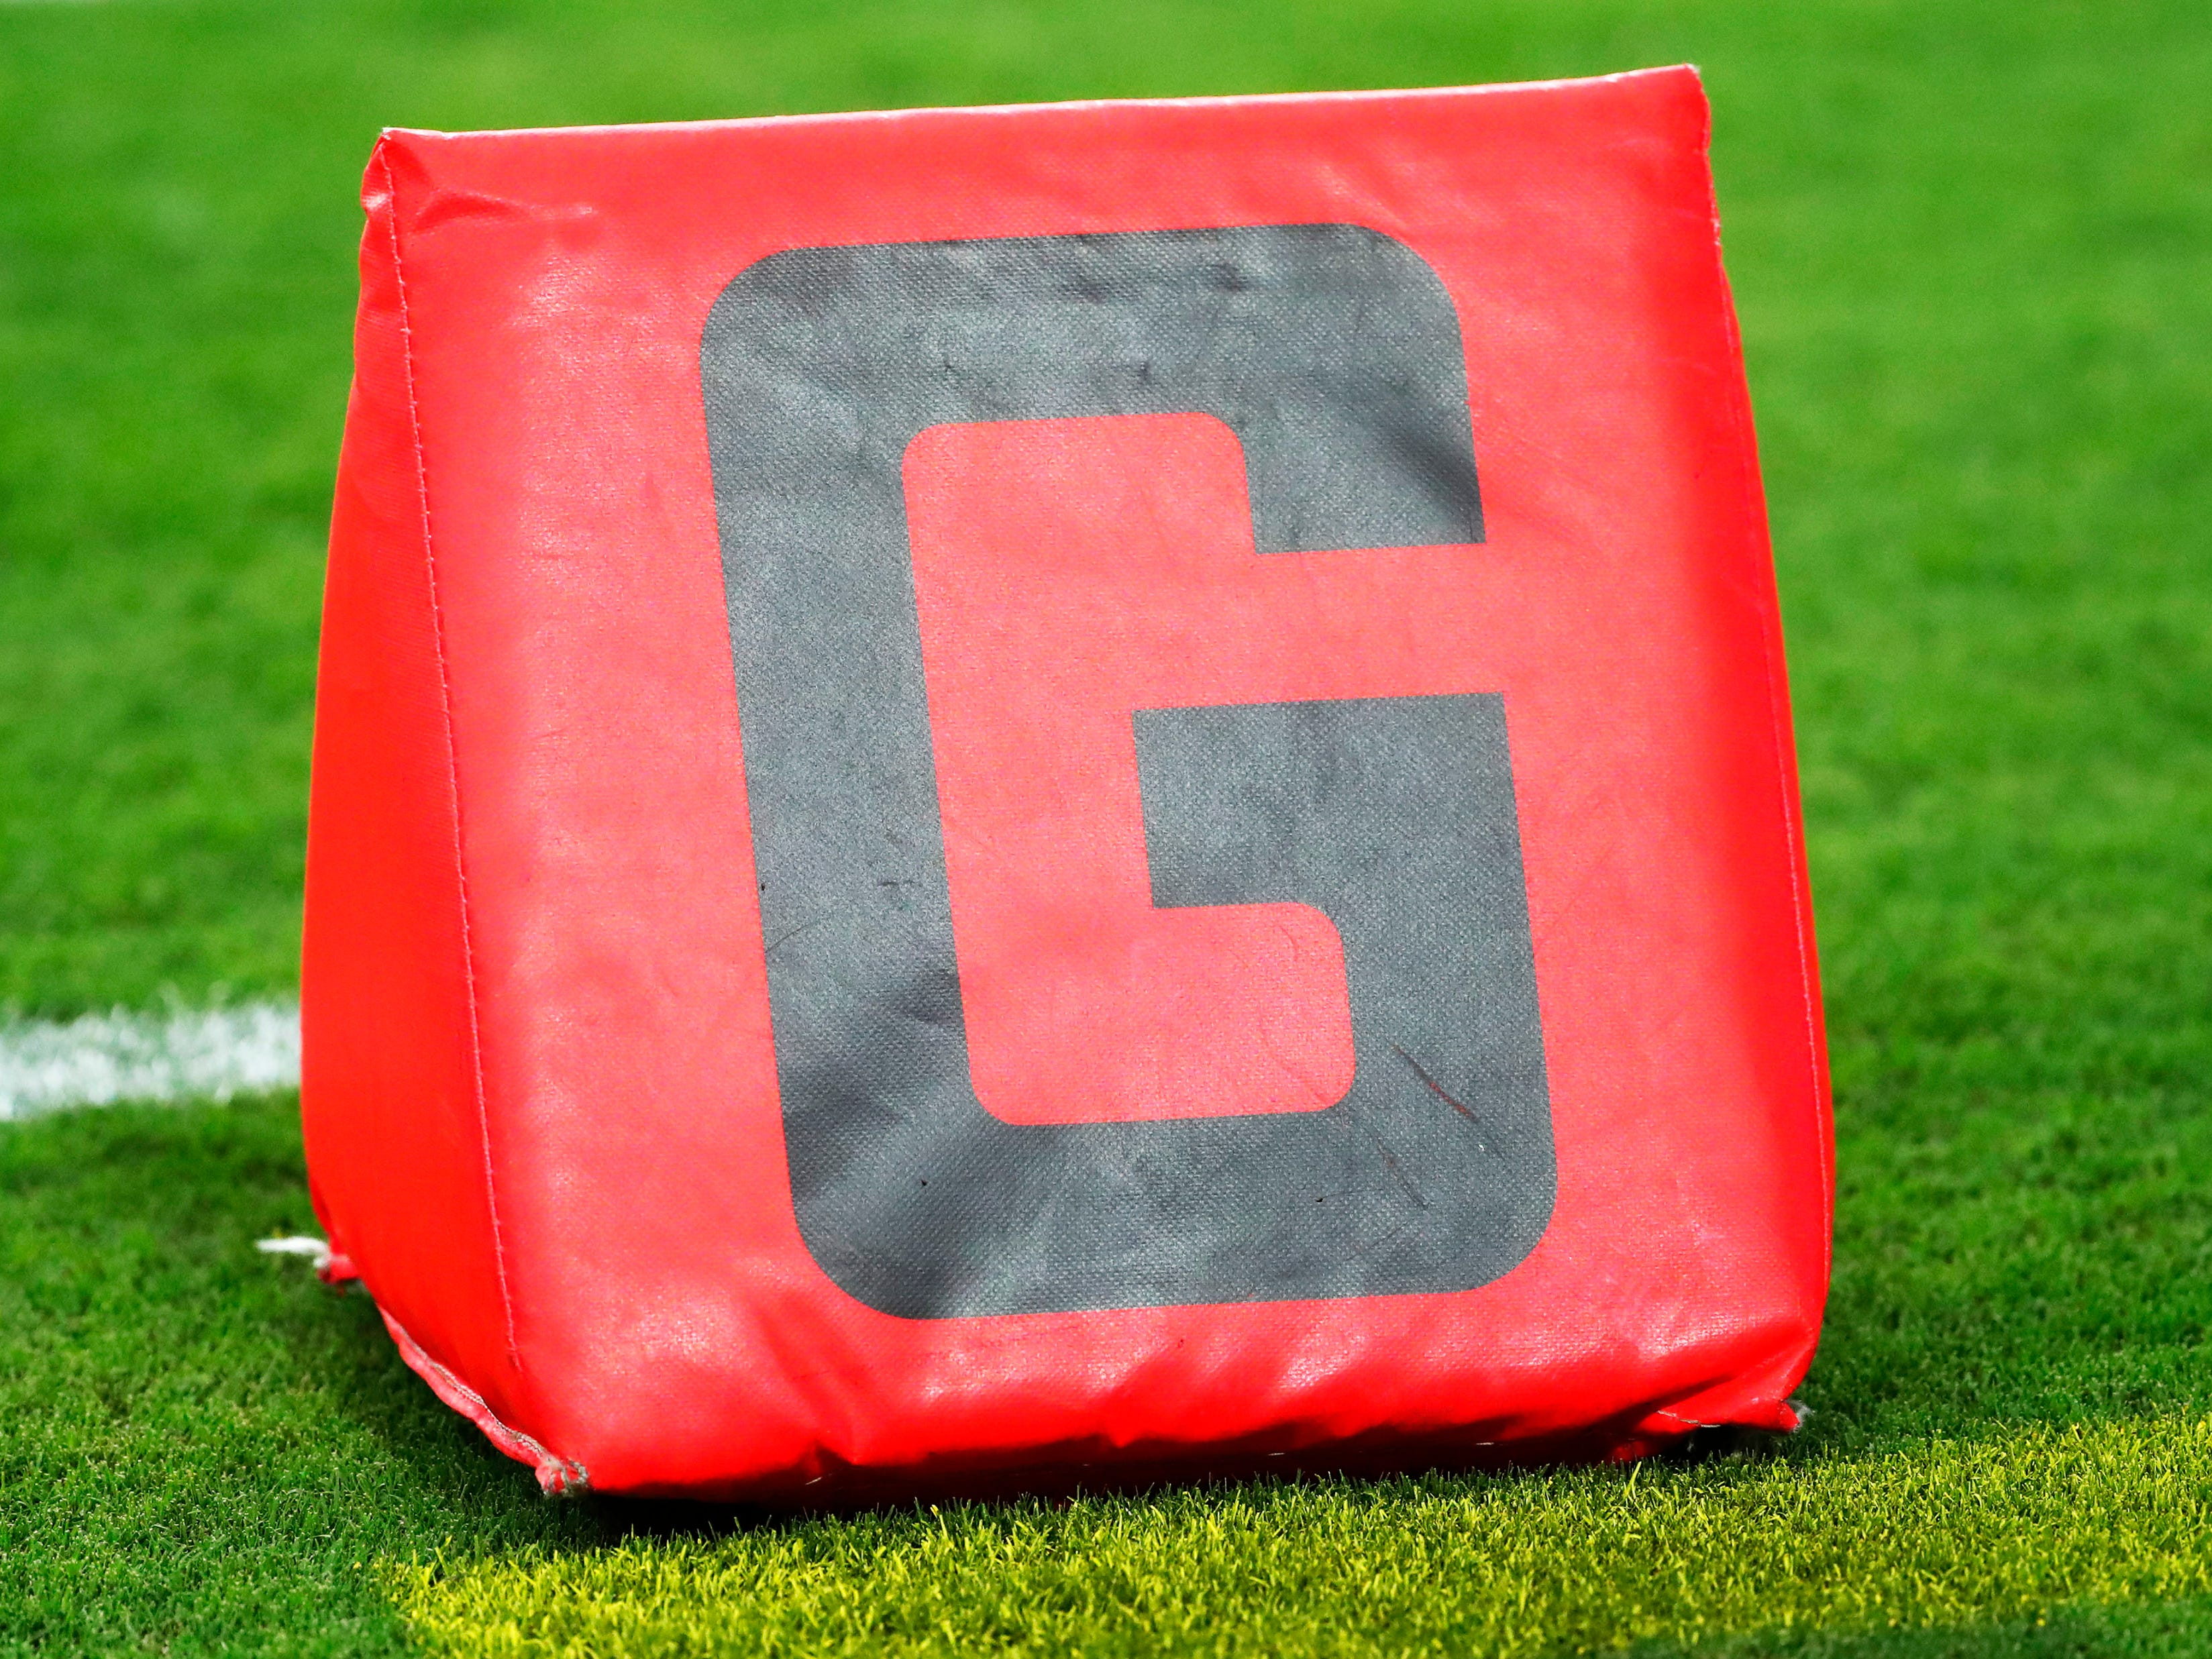 Goal marker icon before NFL action between the Arizona Cardinals and the Chicago Bears at State Farm Stadium in Glendale, Ariz. September 23, 2018.